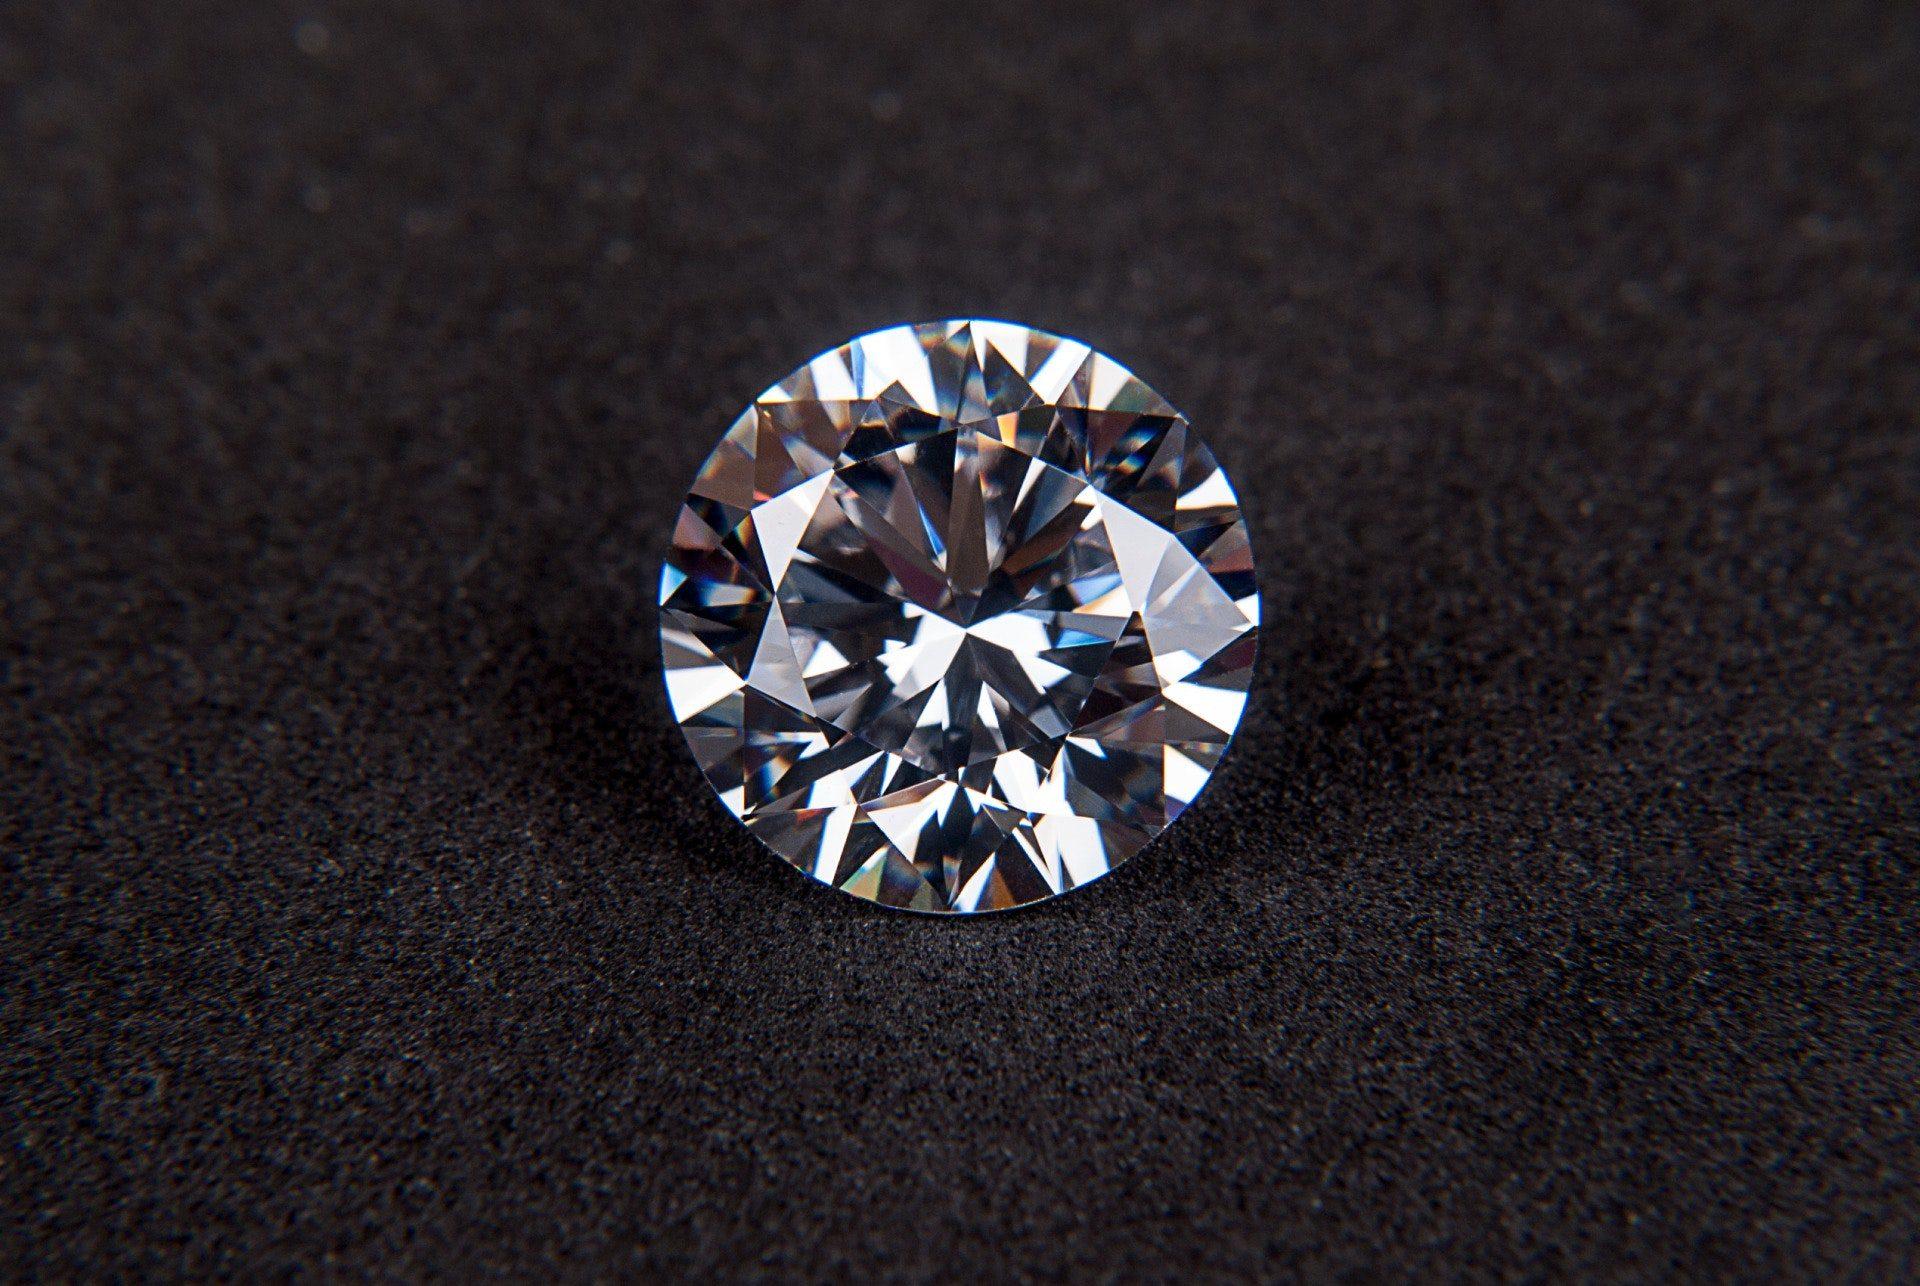 We Buy Diamonds, To Value It We Need To Know The Size, Color, Clarity, And Cut!